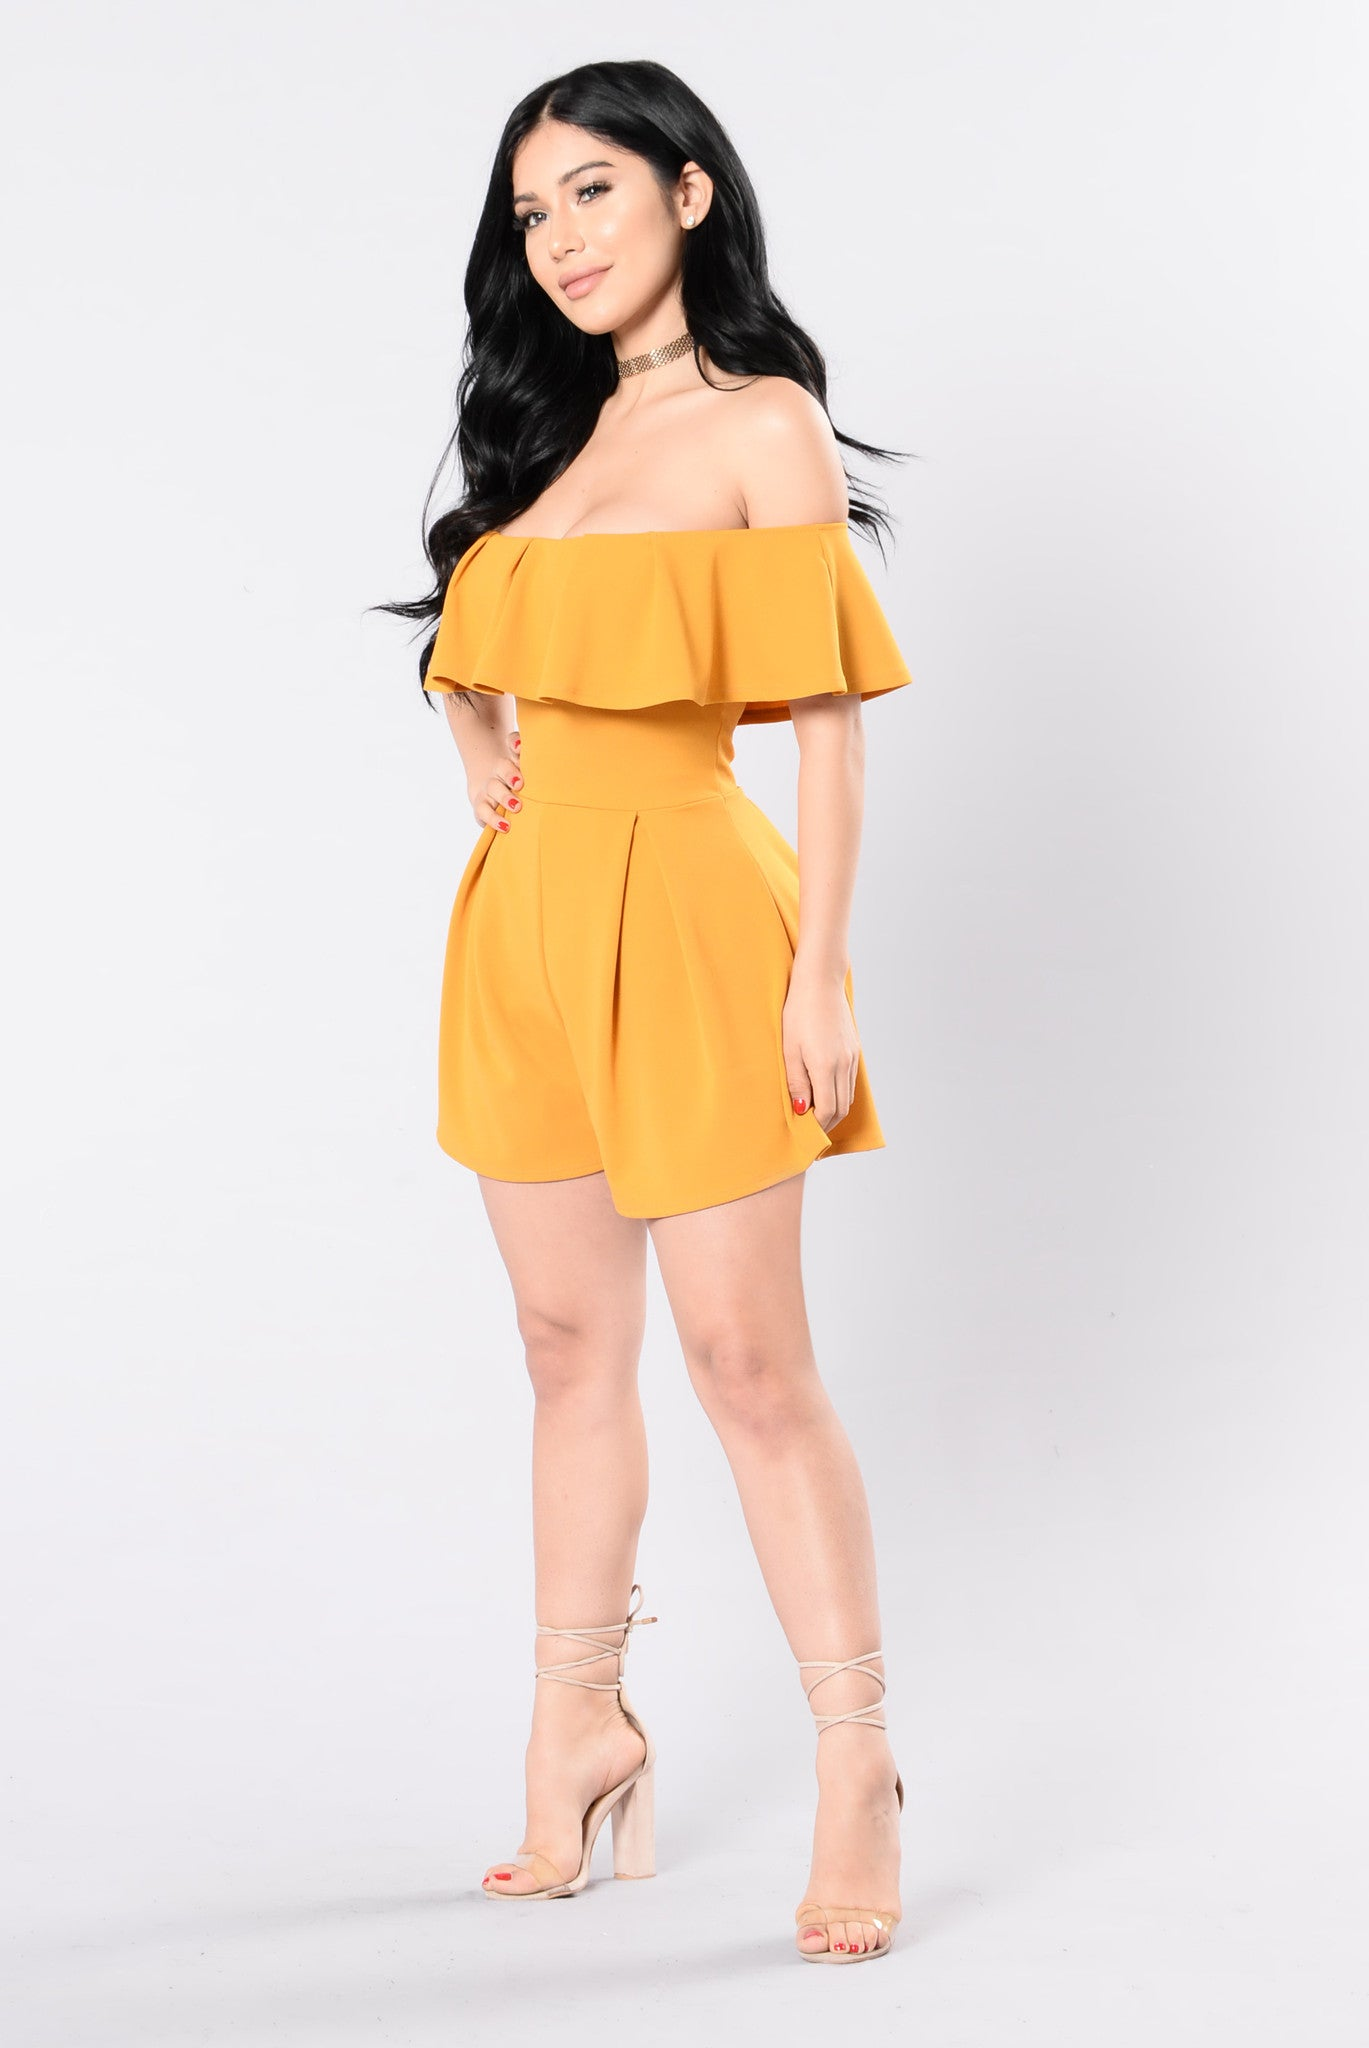 6310c046a306 In My Feelings Romper - Mustard